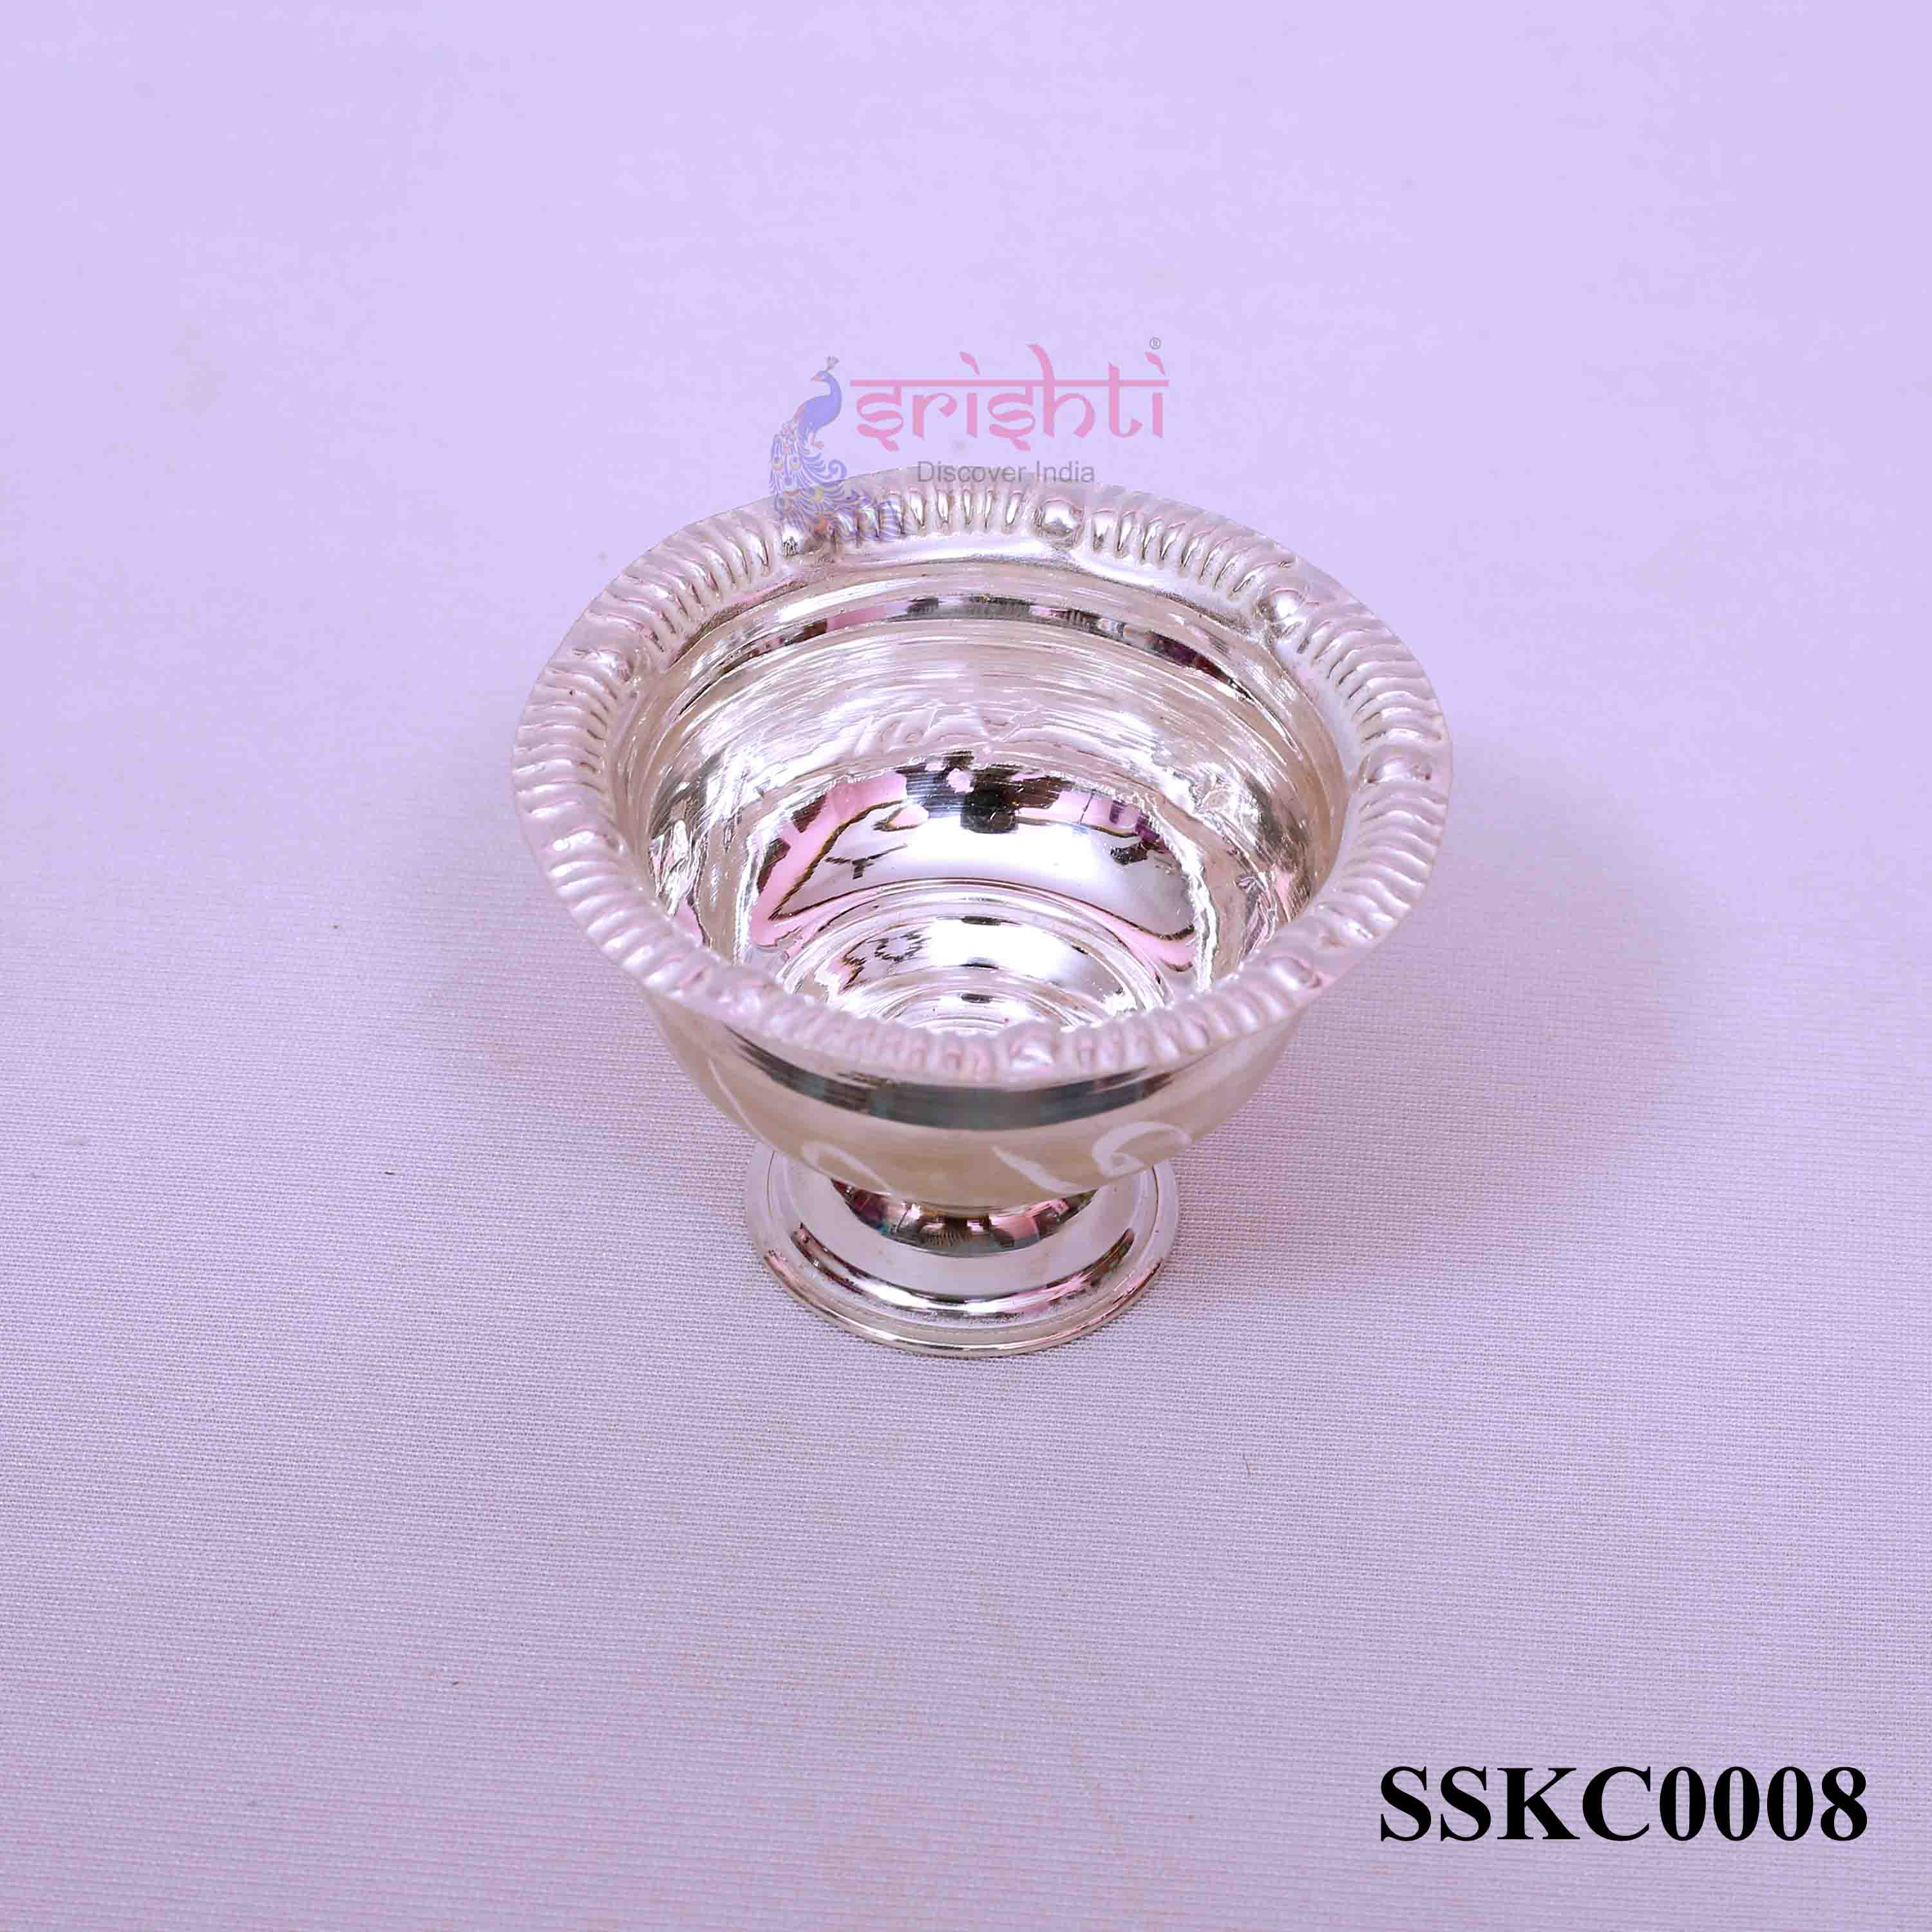 SSSD-Pure Silver Chandan Cup-12 Gms